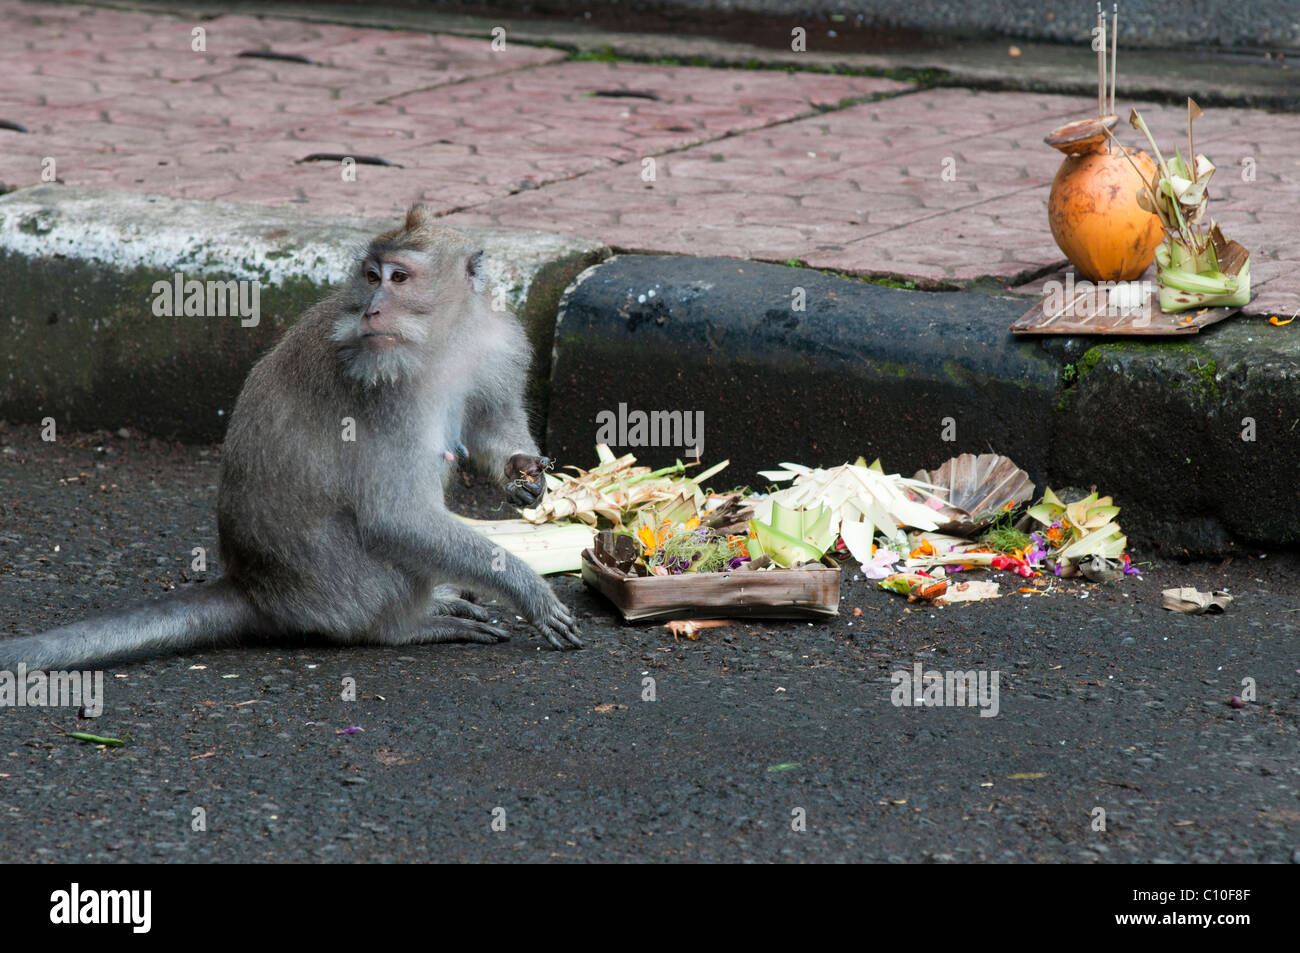 Balinese long tailed macaques scavenging food from religious offerings in the street in Ubud - Stock Image